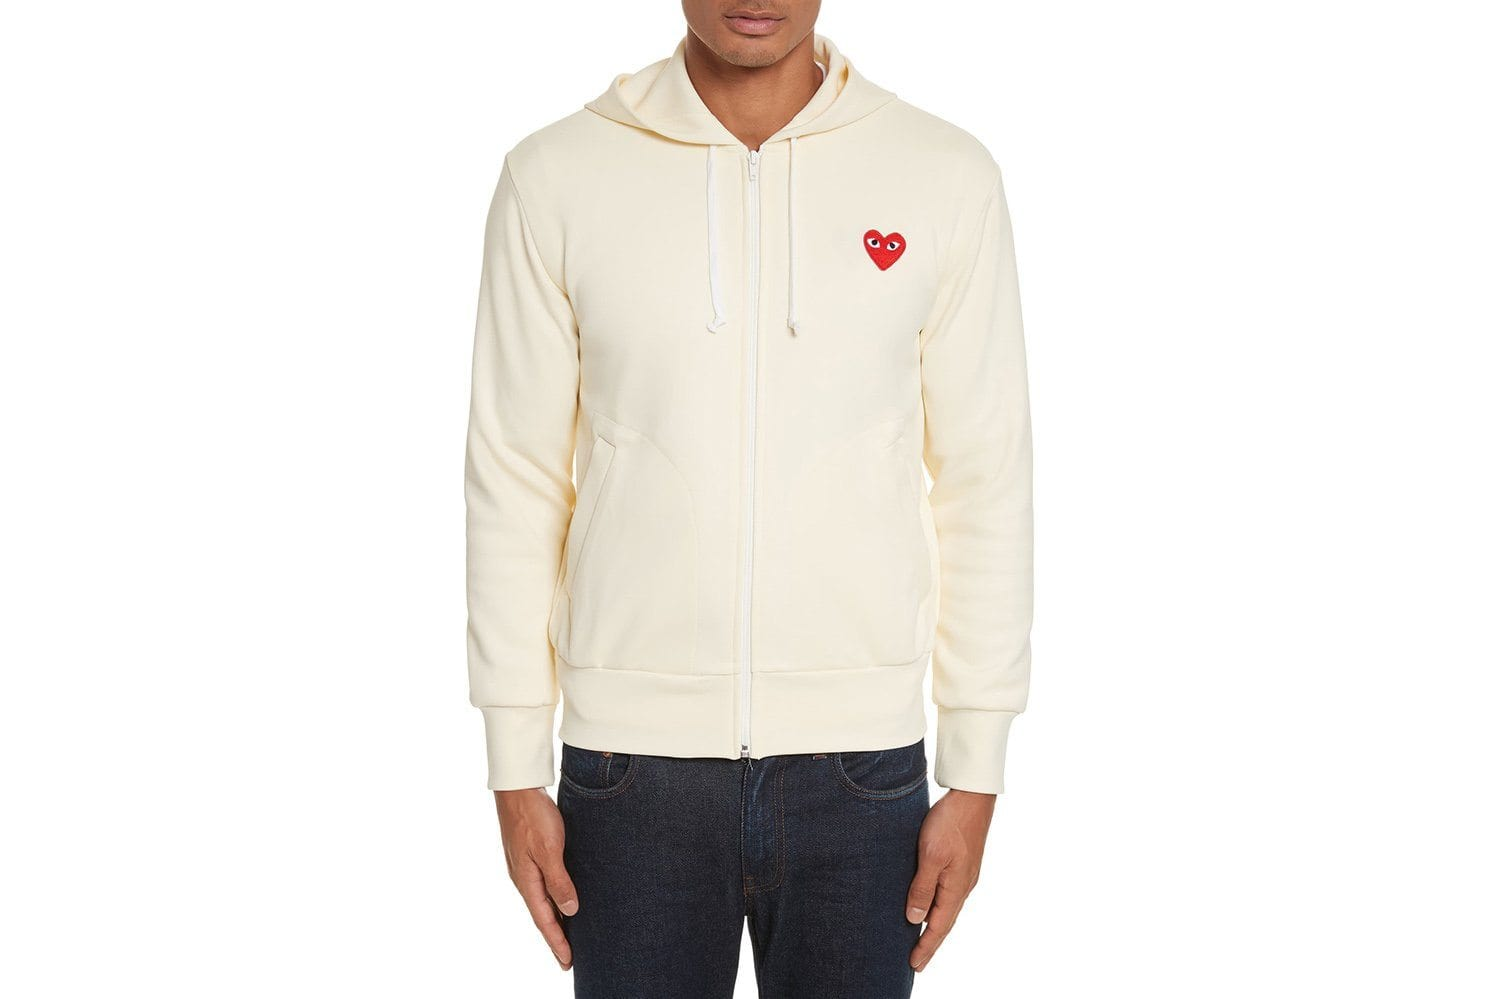 RED EMBLEM LT WEIGHT HOOD ZIP MENS SOFTGOODS COMME DES GARCONS